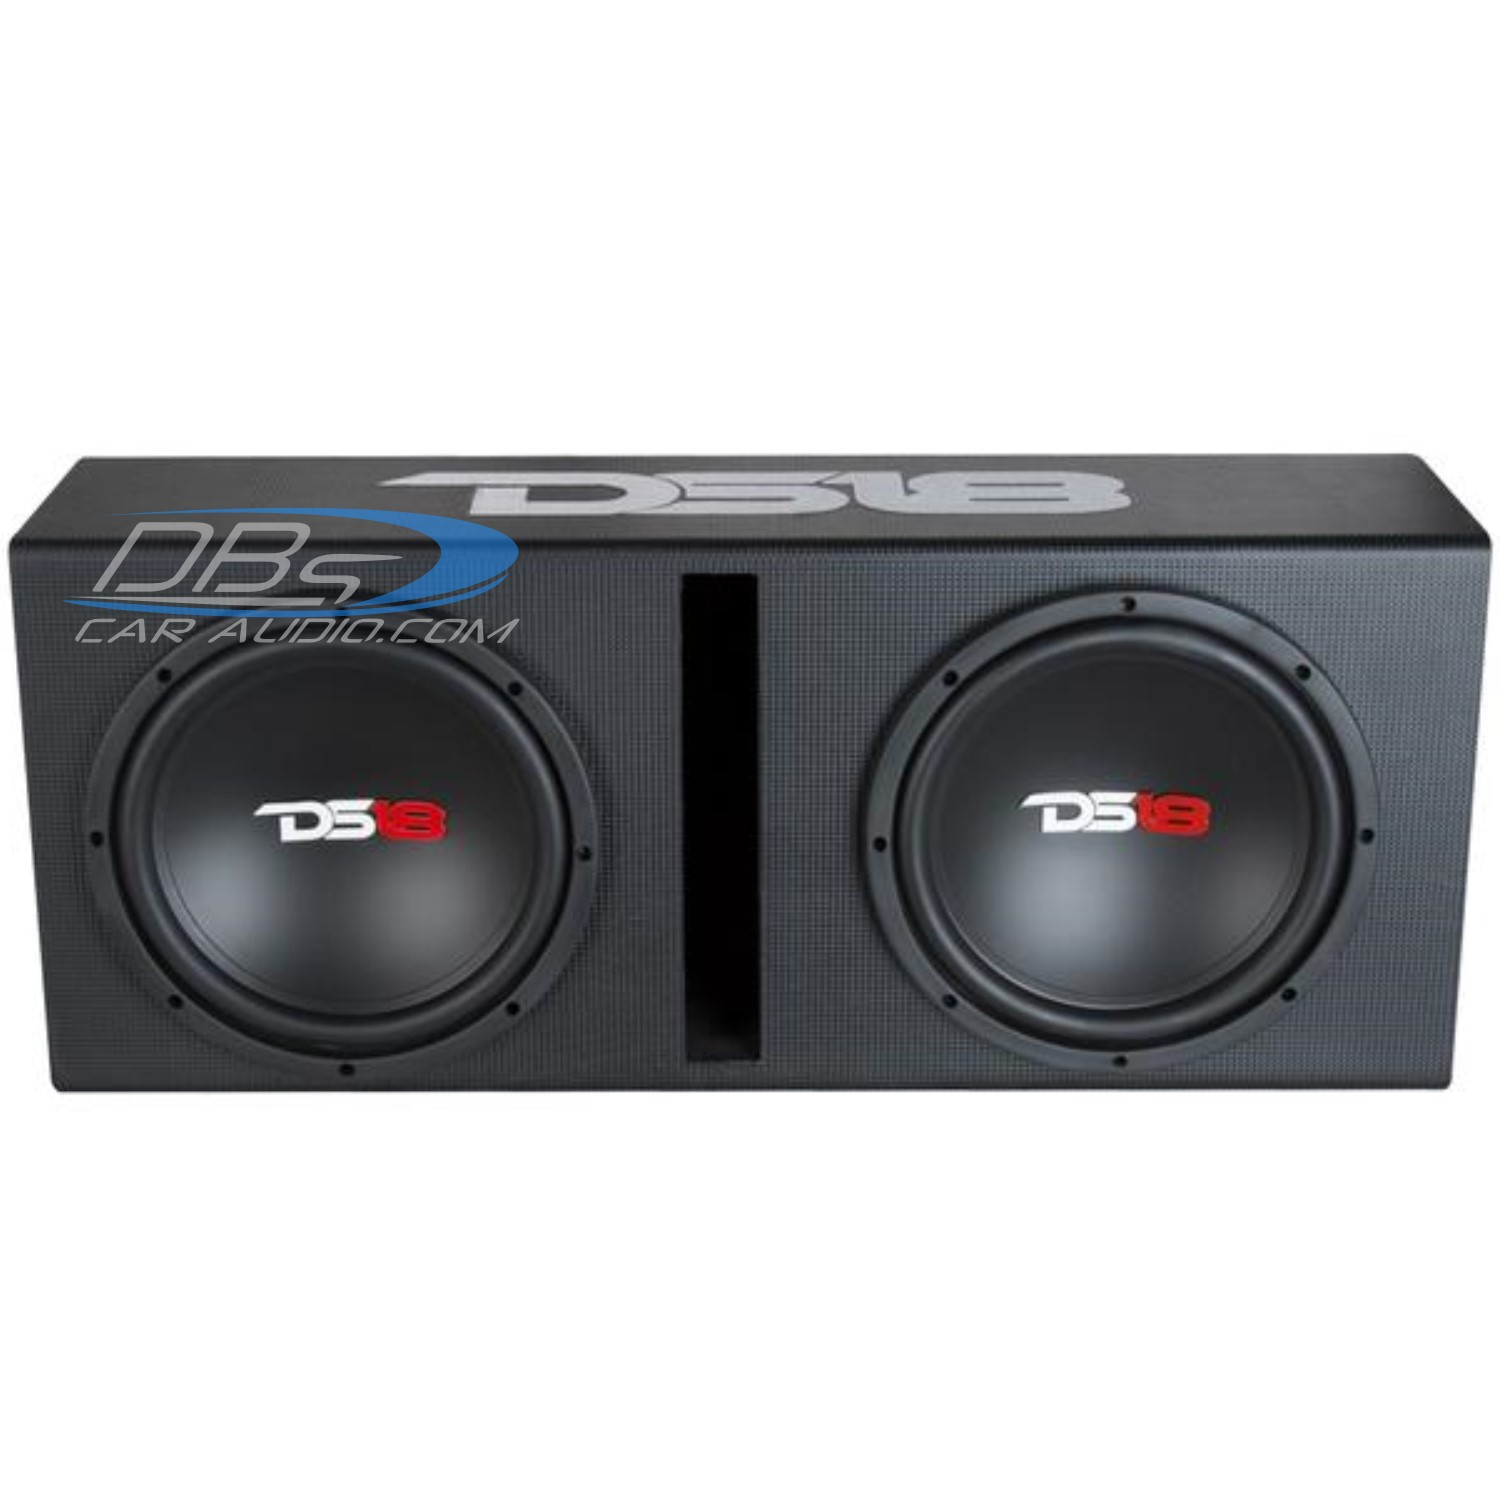 Ds18 Bpx210a Dual 10 Subwoofer Bass Package Includes Built In 1200w Amp Wiring Kit With Capacitor Quick View